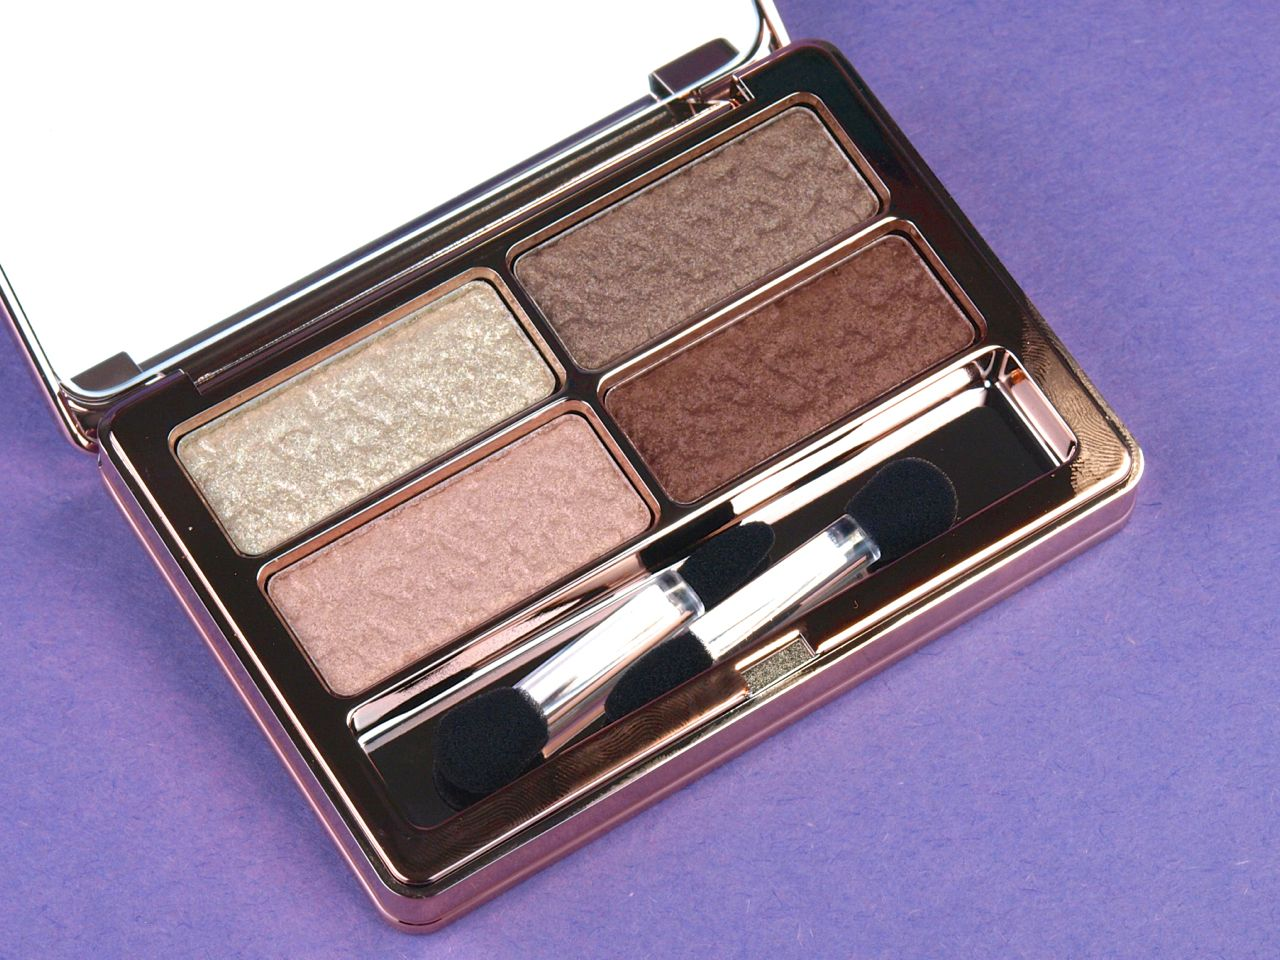 Lise Watier Fall 2014 Quatuor Féline Eyeshadow Quartet Palette Review and Swatches